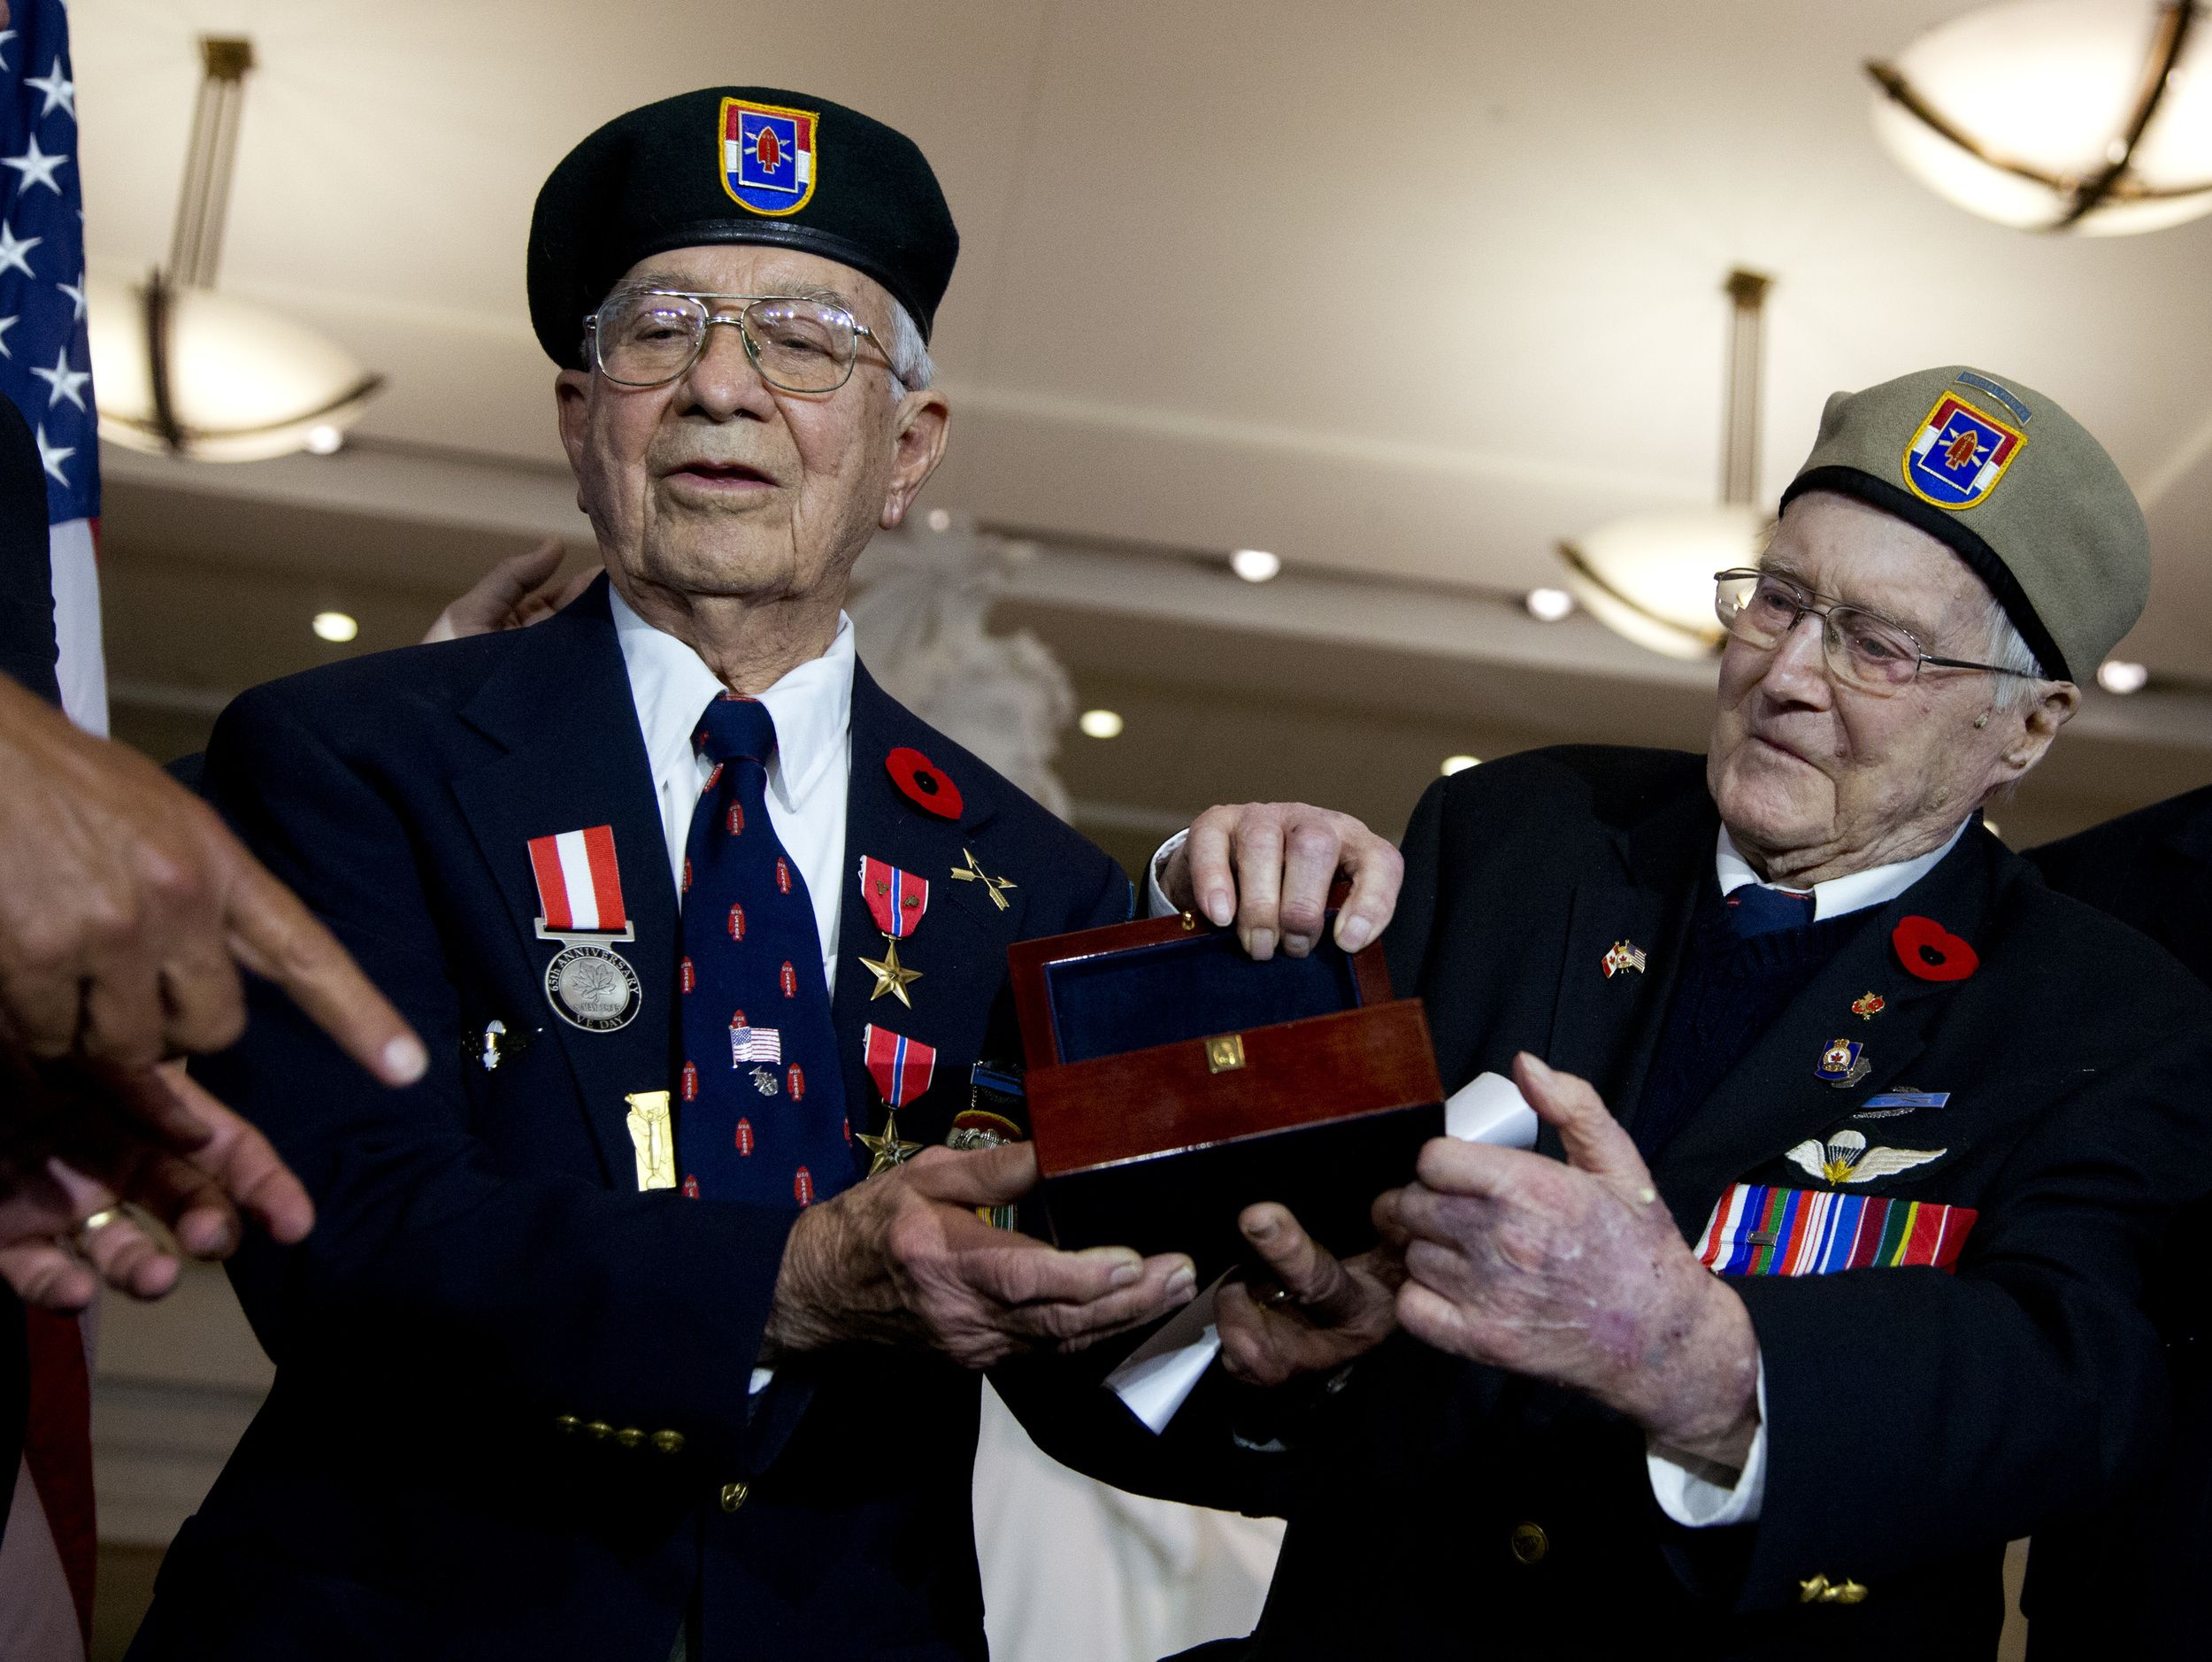 """In 1942, they were lumberjacks, miners, hunters and farmers from the United States and Canada, who came together at a U.S. Army base in Montana. Within a few months, they were well-trained warriors nicknamed """"The Devil's Brigade""""."""